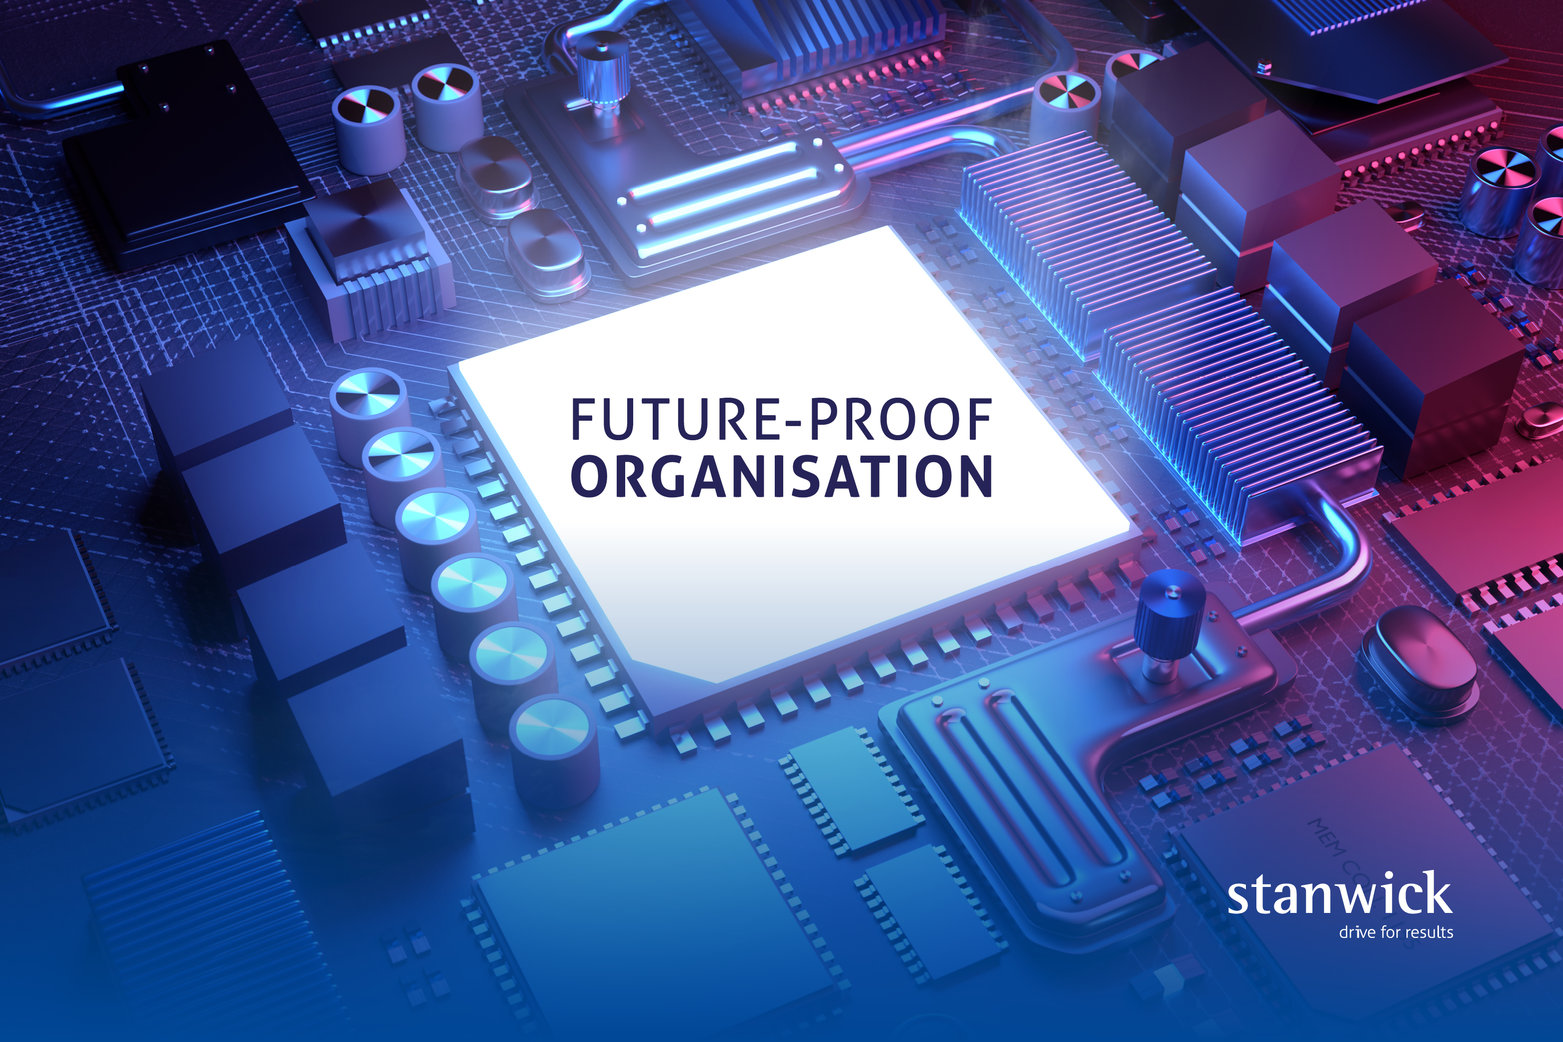 Stanwick - future-proof organisation